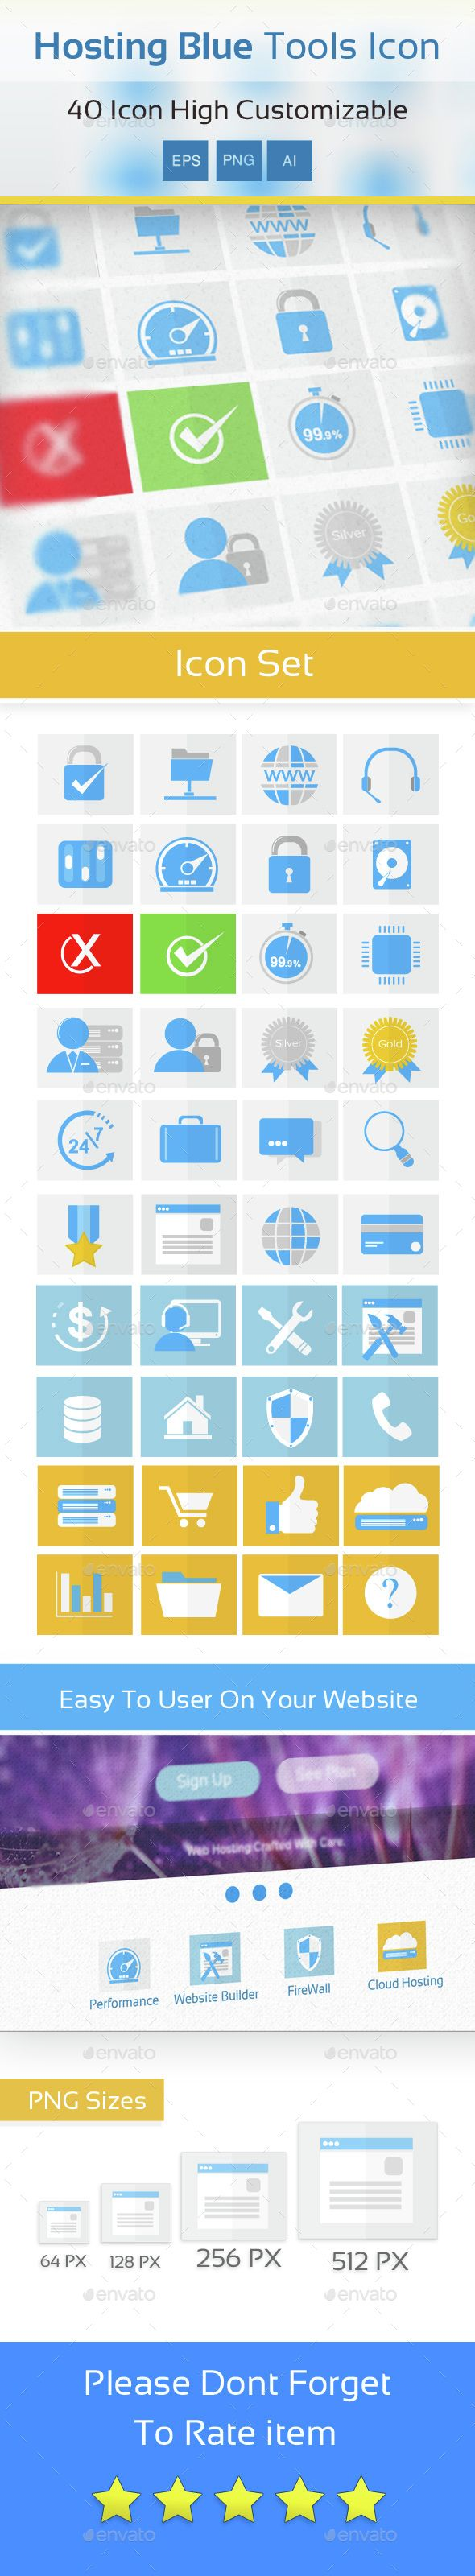 40 Vector Icons for Hosting. This is a vector illustration. You can be scaled this image to any size without loss of resolution. Shadowless transparent PNG included. AI CS4 , EPS8, PNG